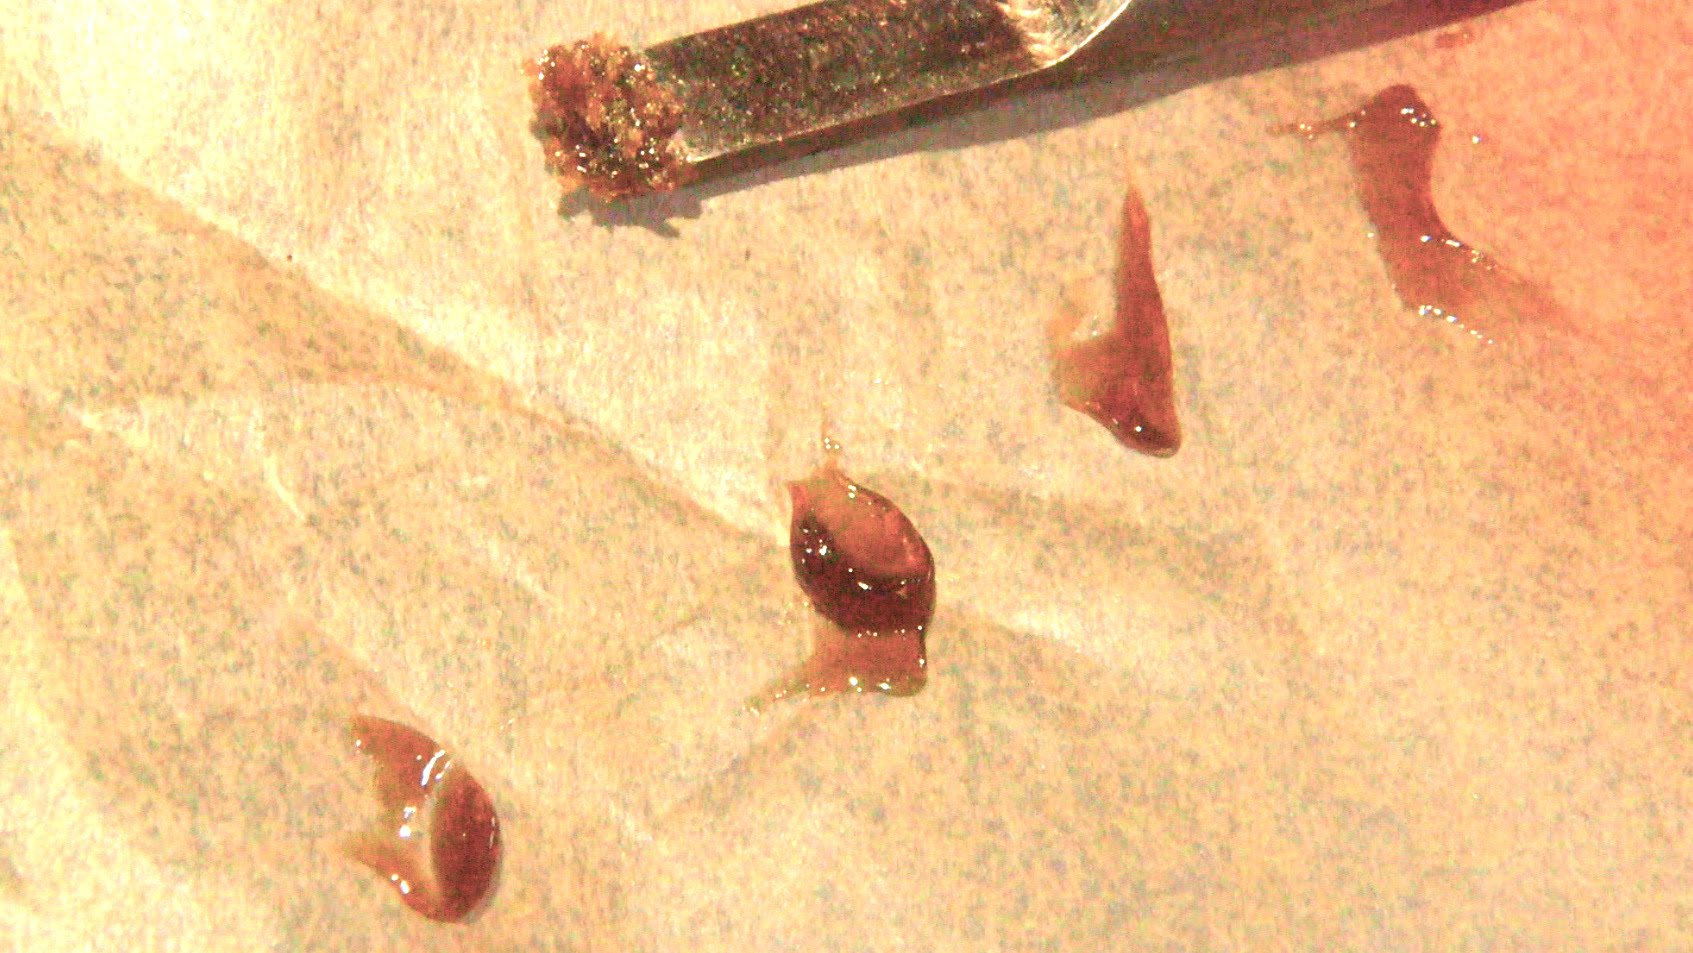 How to Make Shatter With a Quick Wash of Isopropyl Alcohol (QWISO): Cannabasics #12